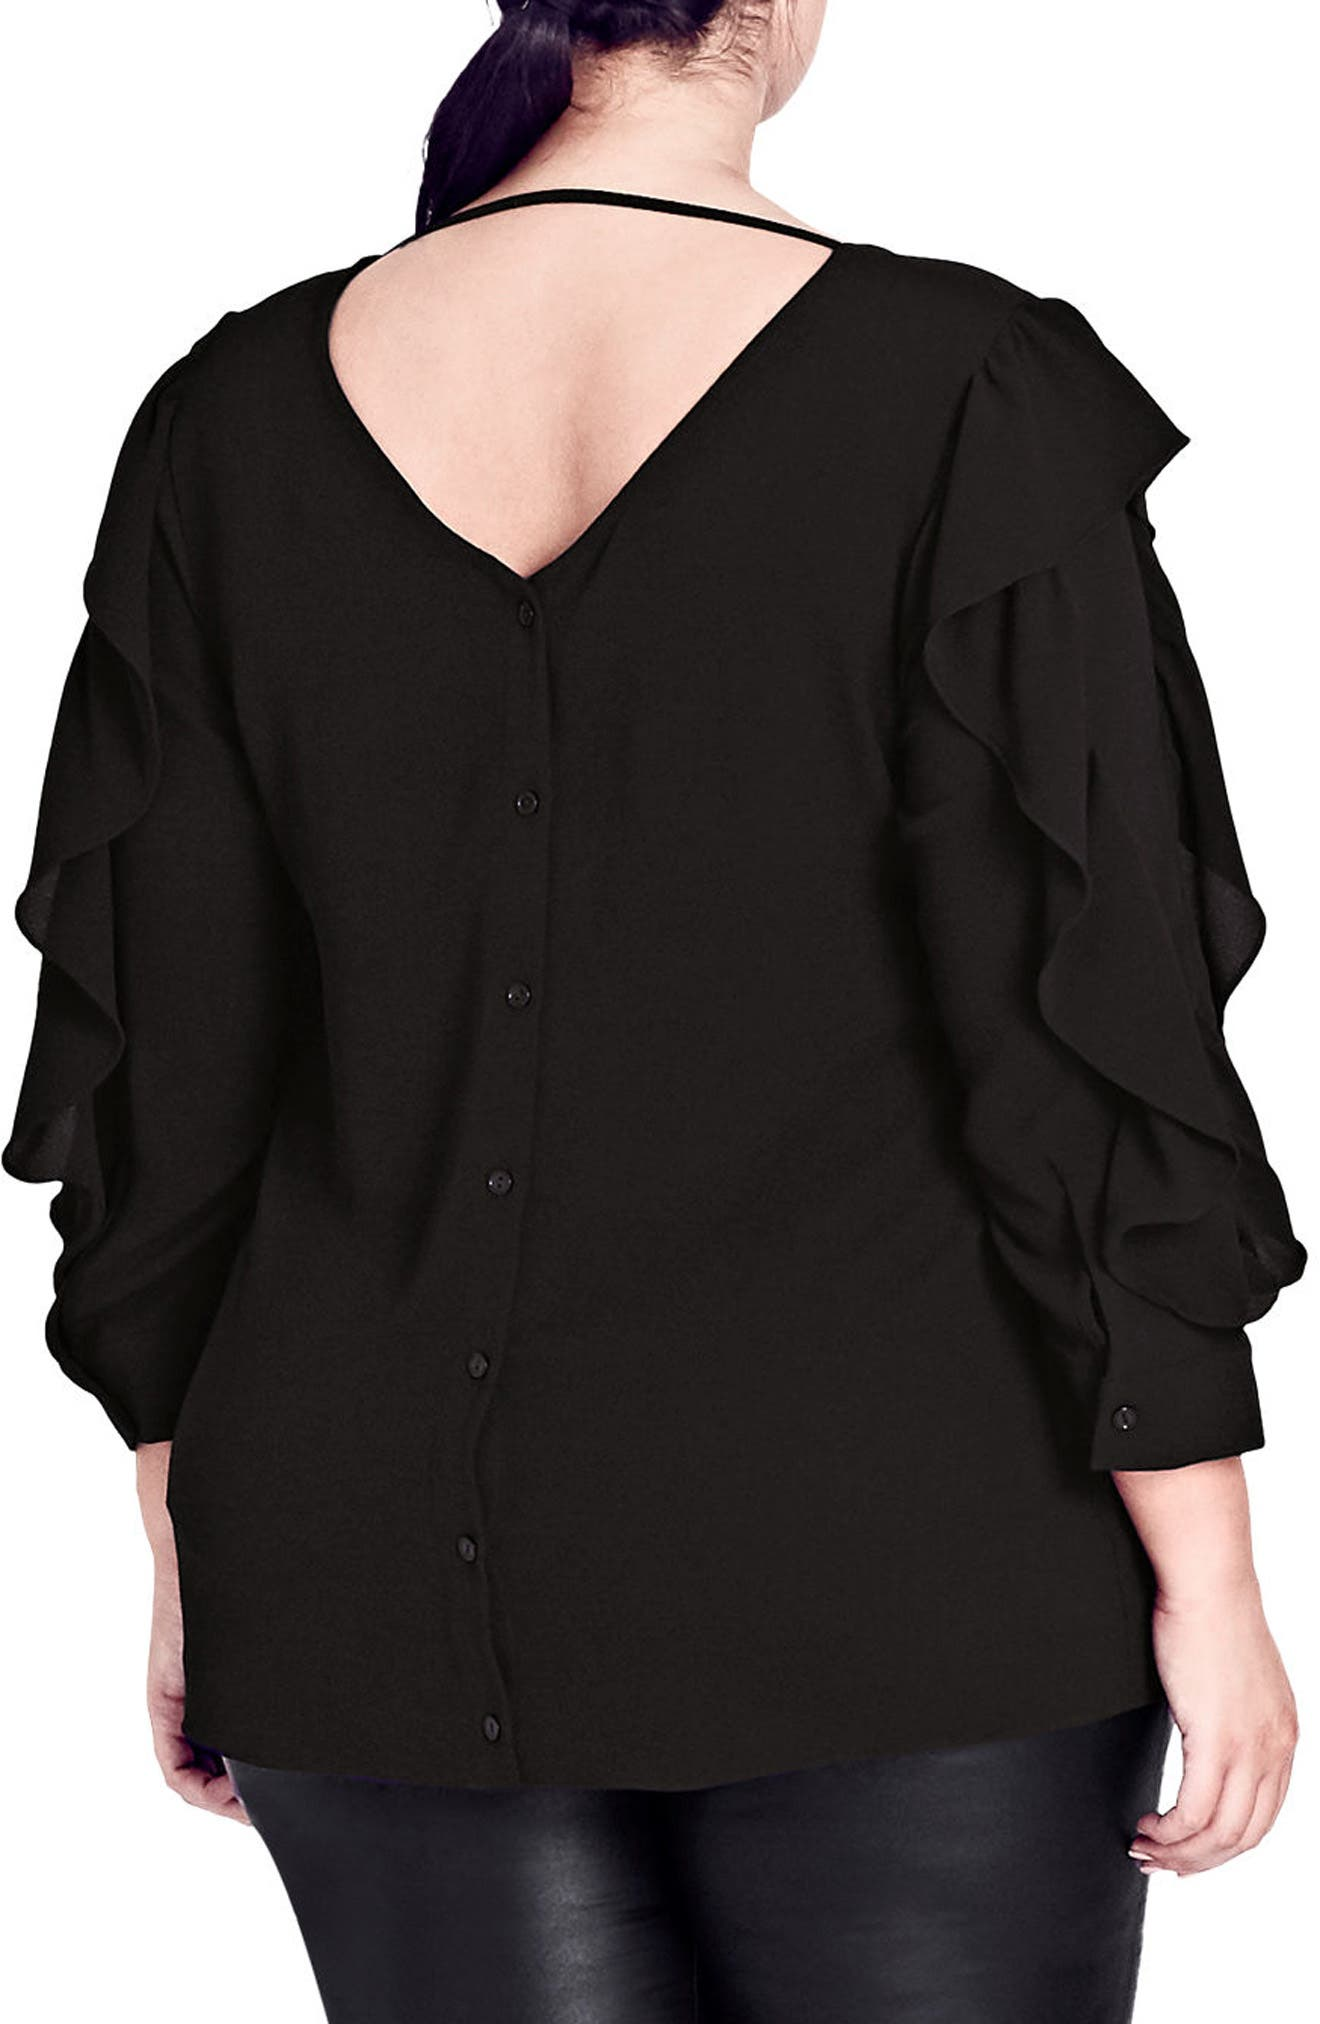 Alternate Image 2  - City Chic Ruffle Sleeve Button Back Shirt (Plus Size)